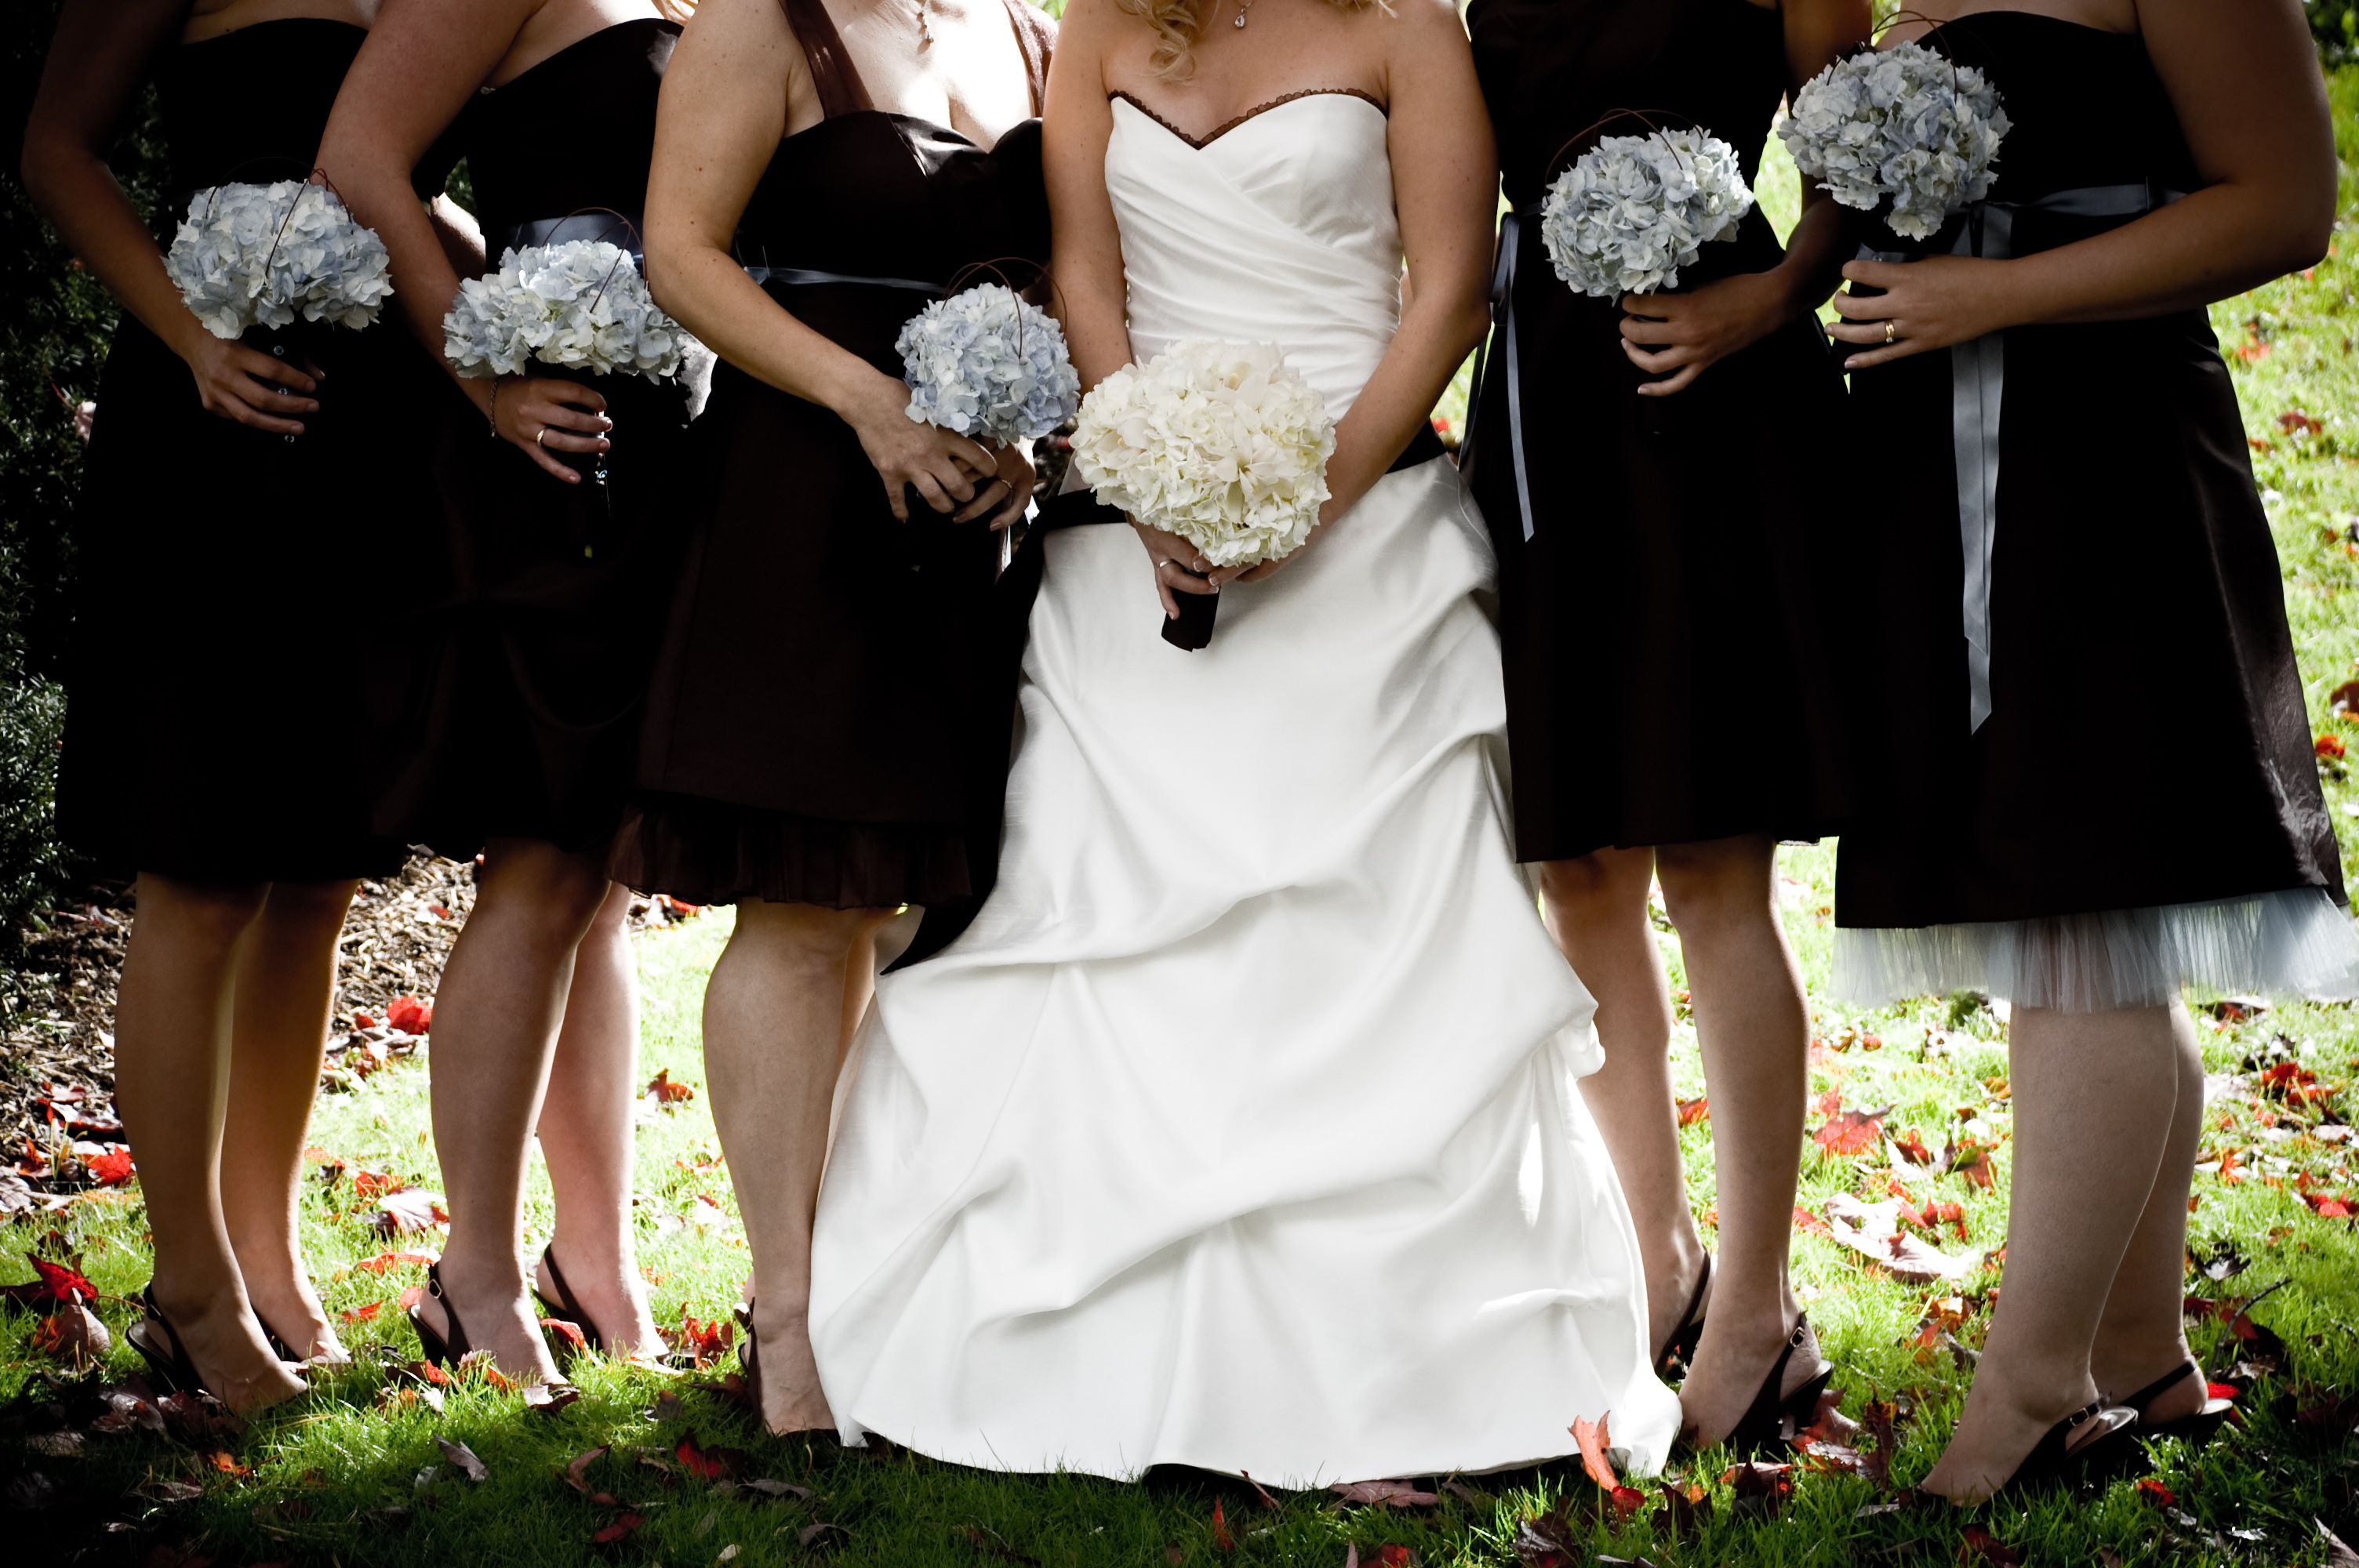 How much to alter wedding dress  Best Alterations and Tailoring in Mississauga Area Nocce Bridal